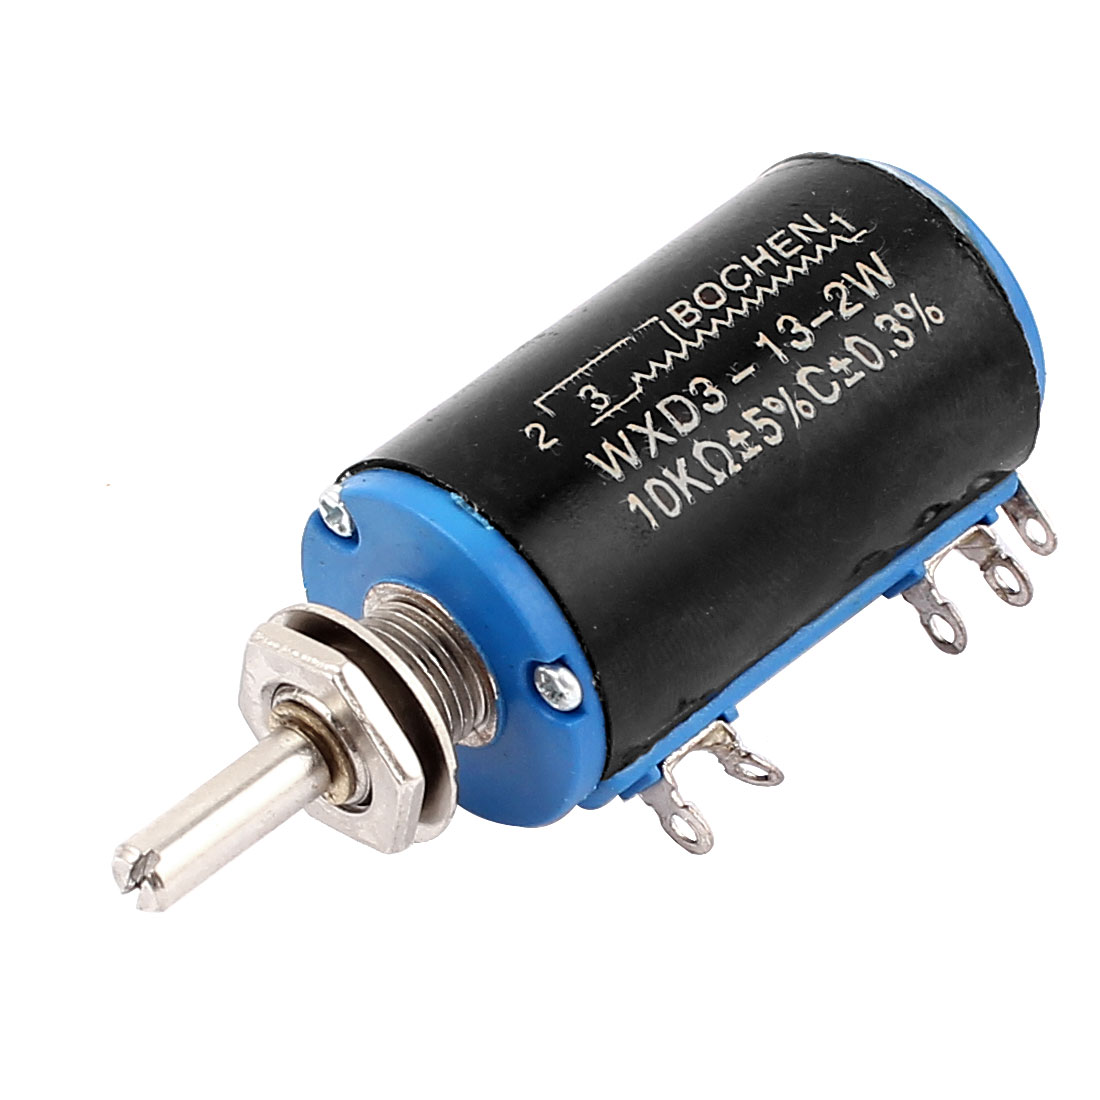 WXD3-13-2W 10K Ohm 5% Tolerance Multi Turn 3 Terminals Rotary Wire Wound Potentiometer